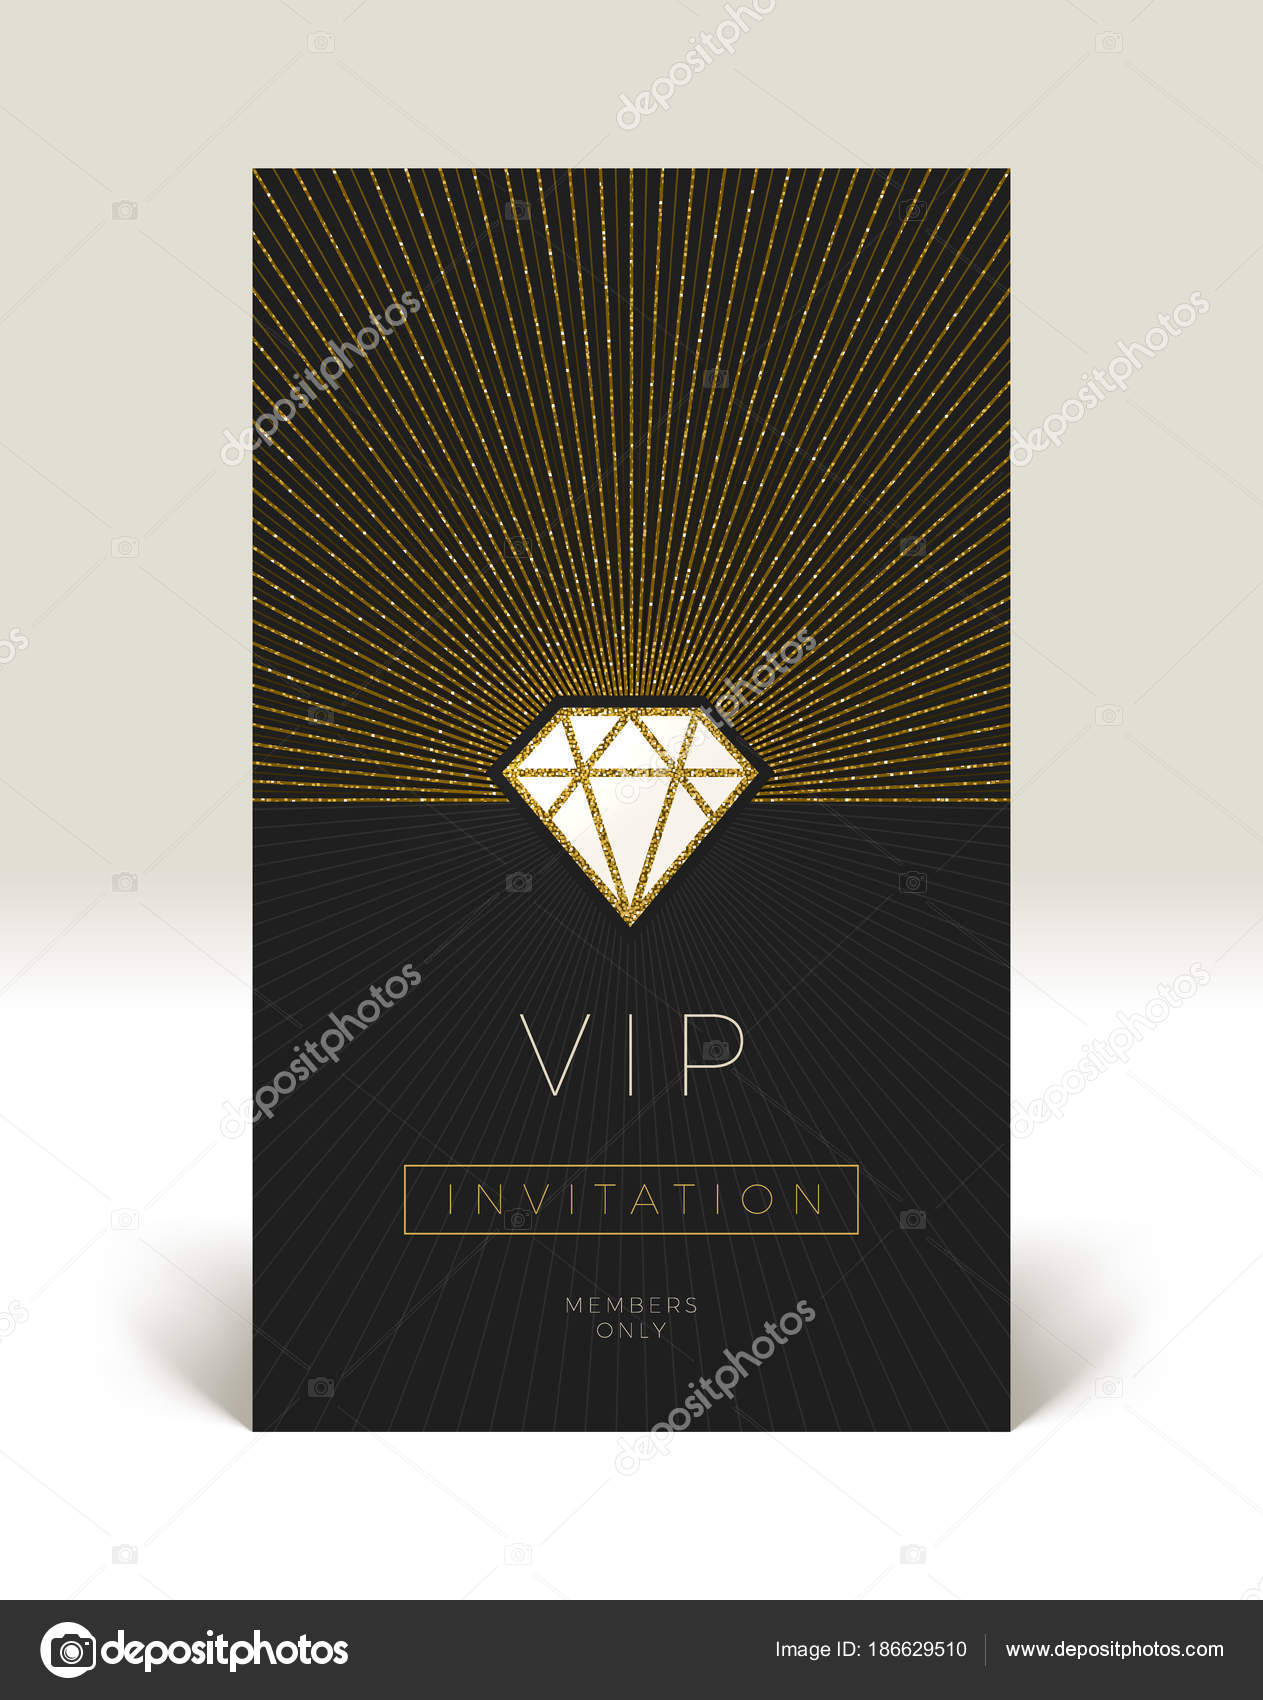 Template of vip invitation glitter gold shining diamond with template of vip invitation glitter gold shining diamond with sunburst on a black background vector illustration vector by s e r g o stopboris Image collections